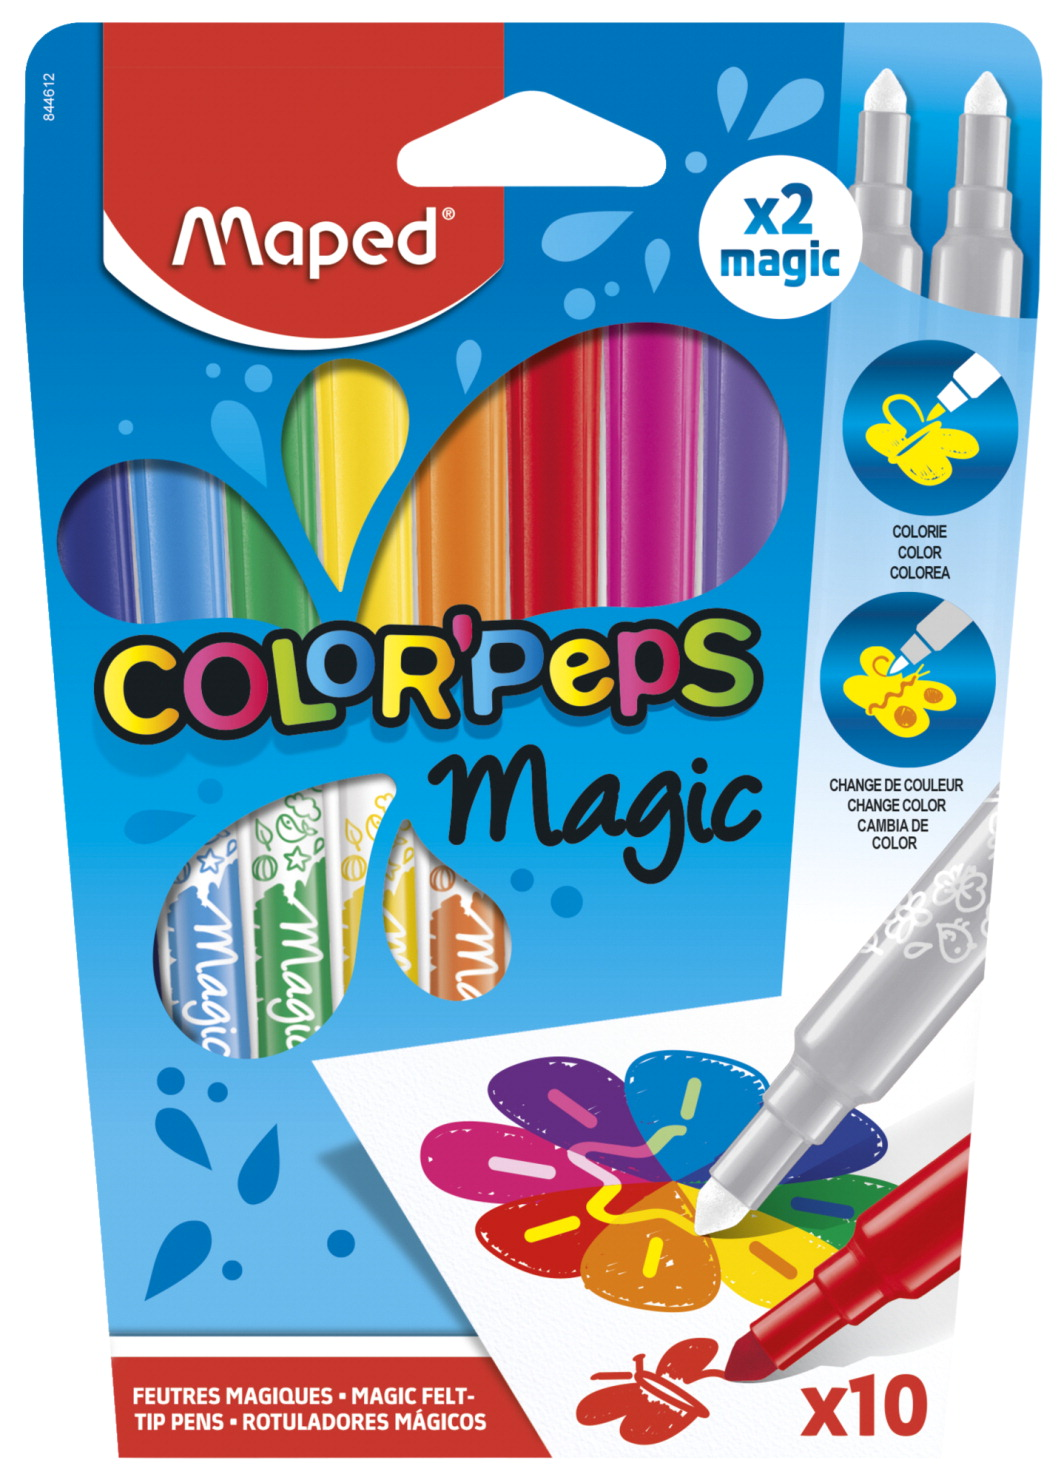 Maped Color'Peps Magic Markers, Assorted Colors, Set of 10